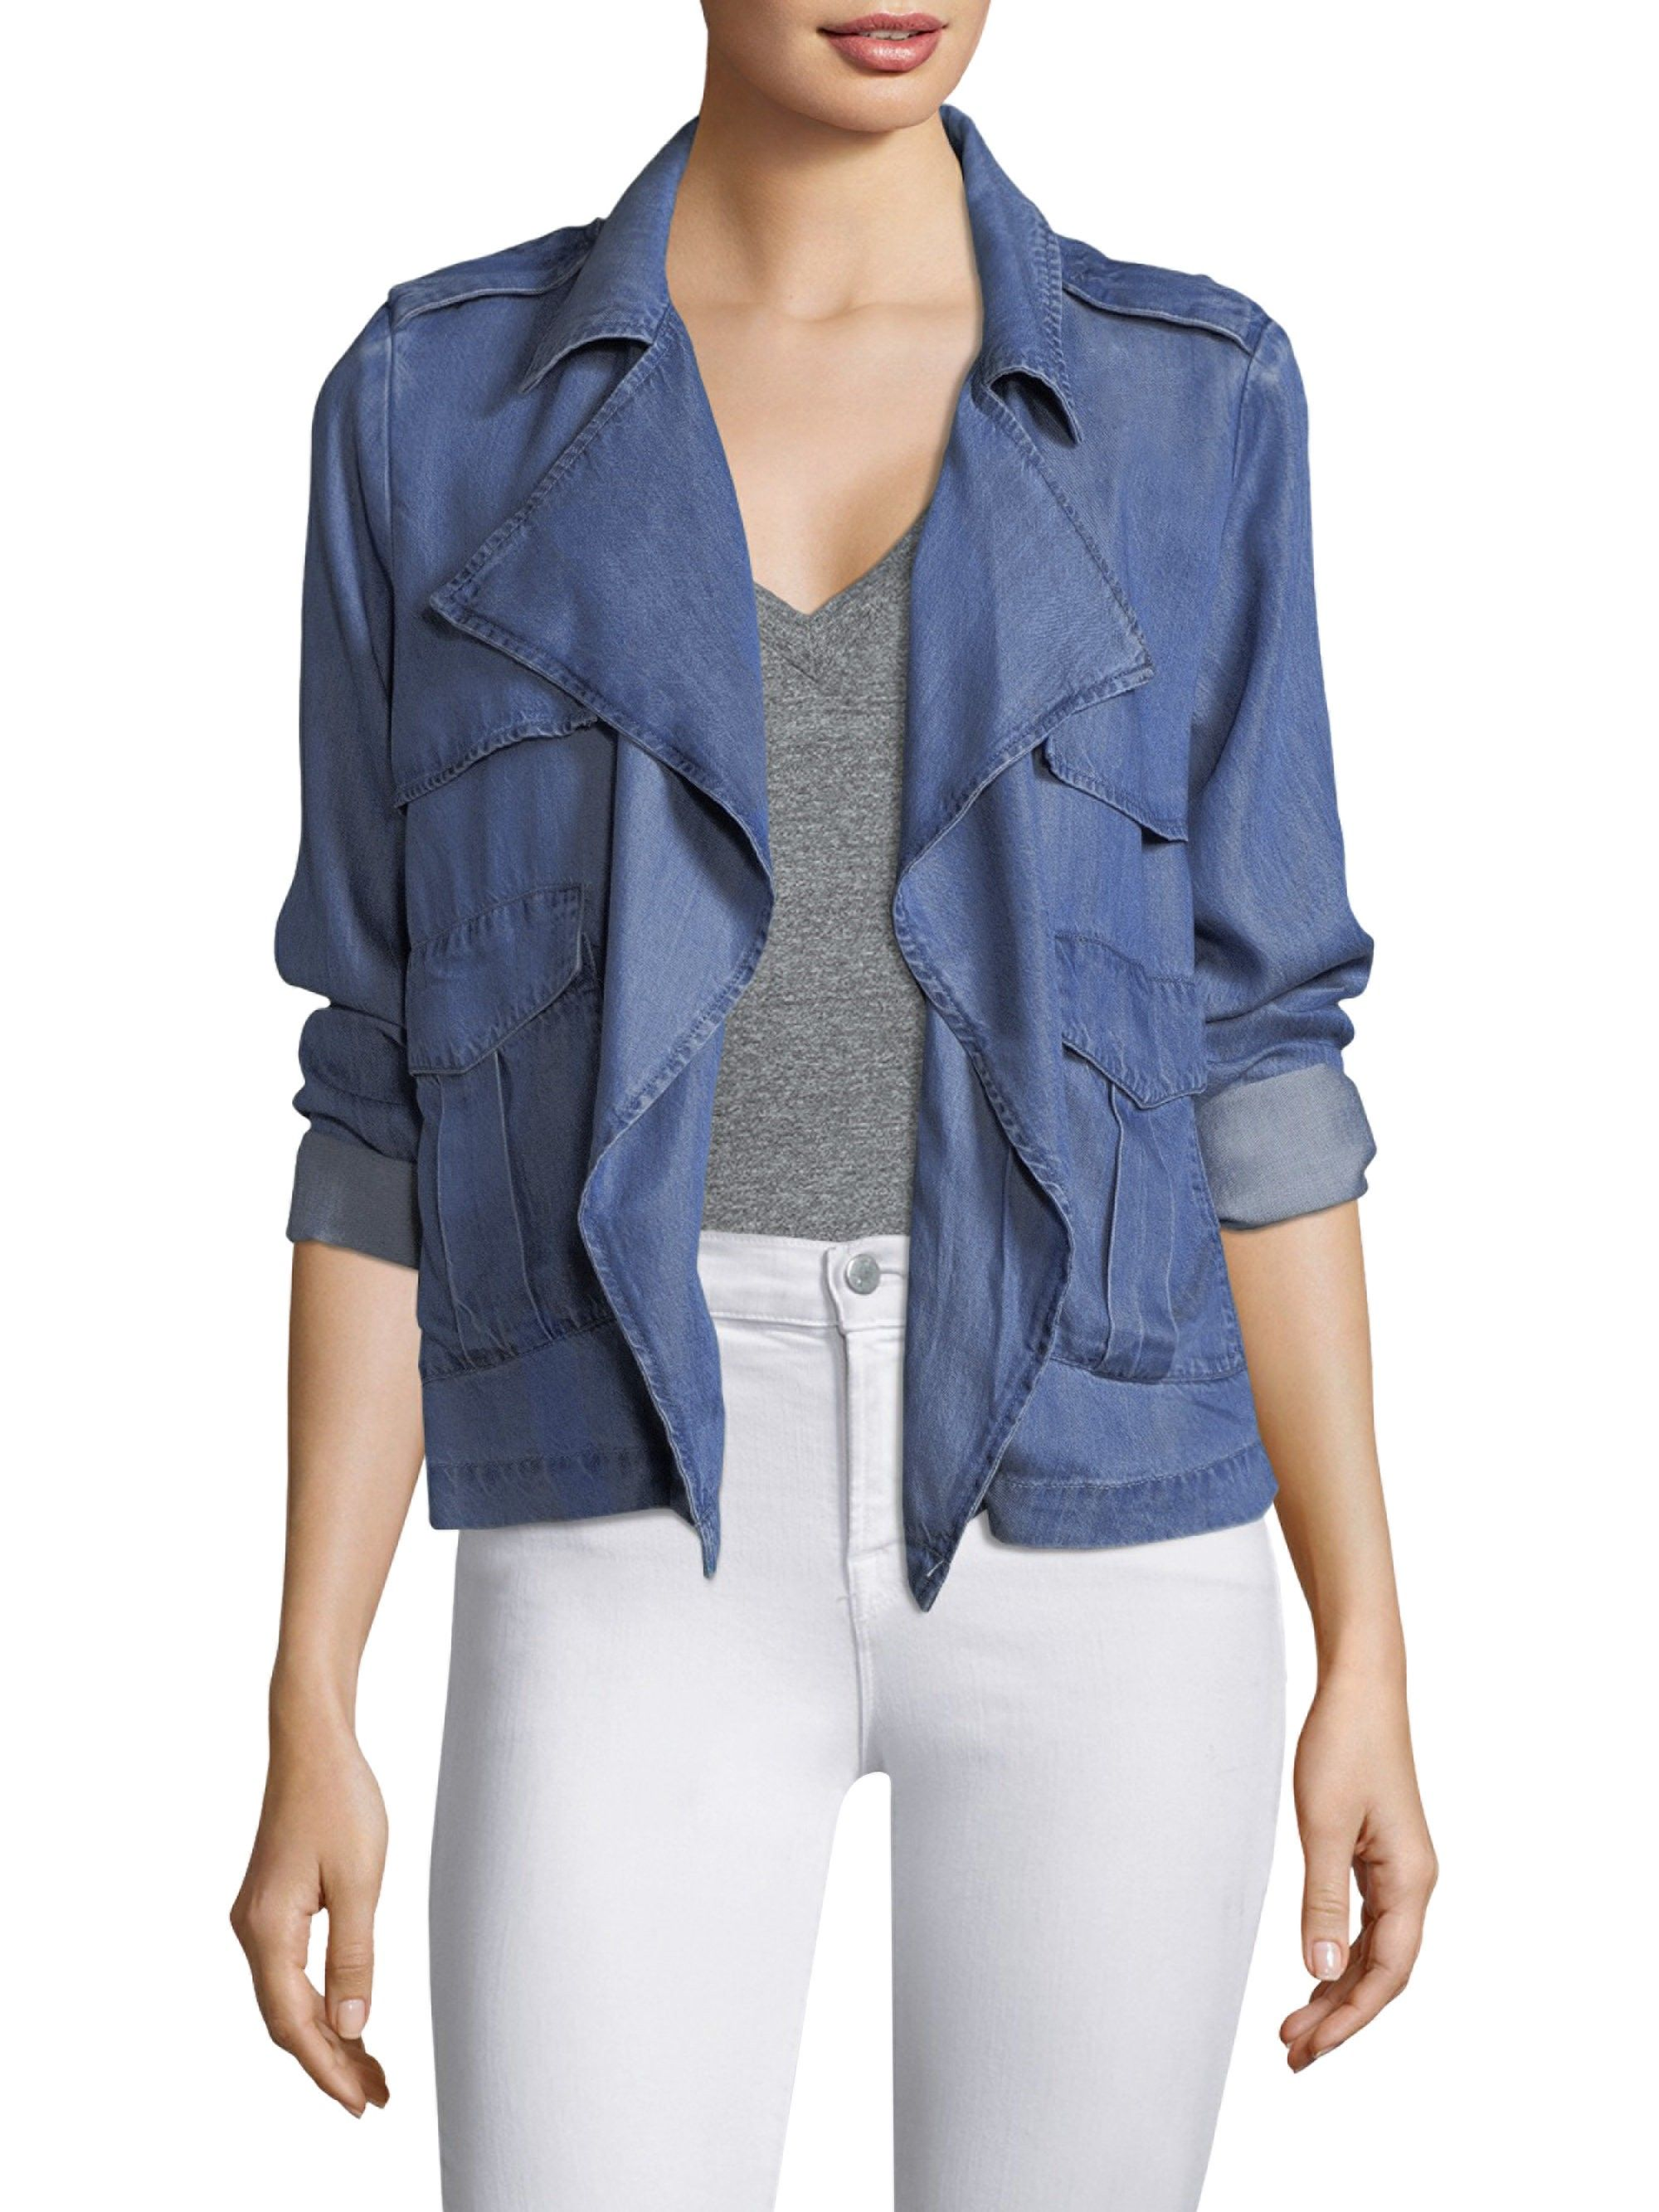 official great fit preview of Soft Denim Jacket by Splendid | Jackets, Clothes for women ...